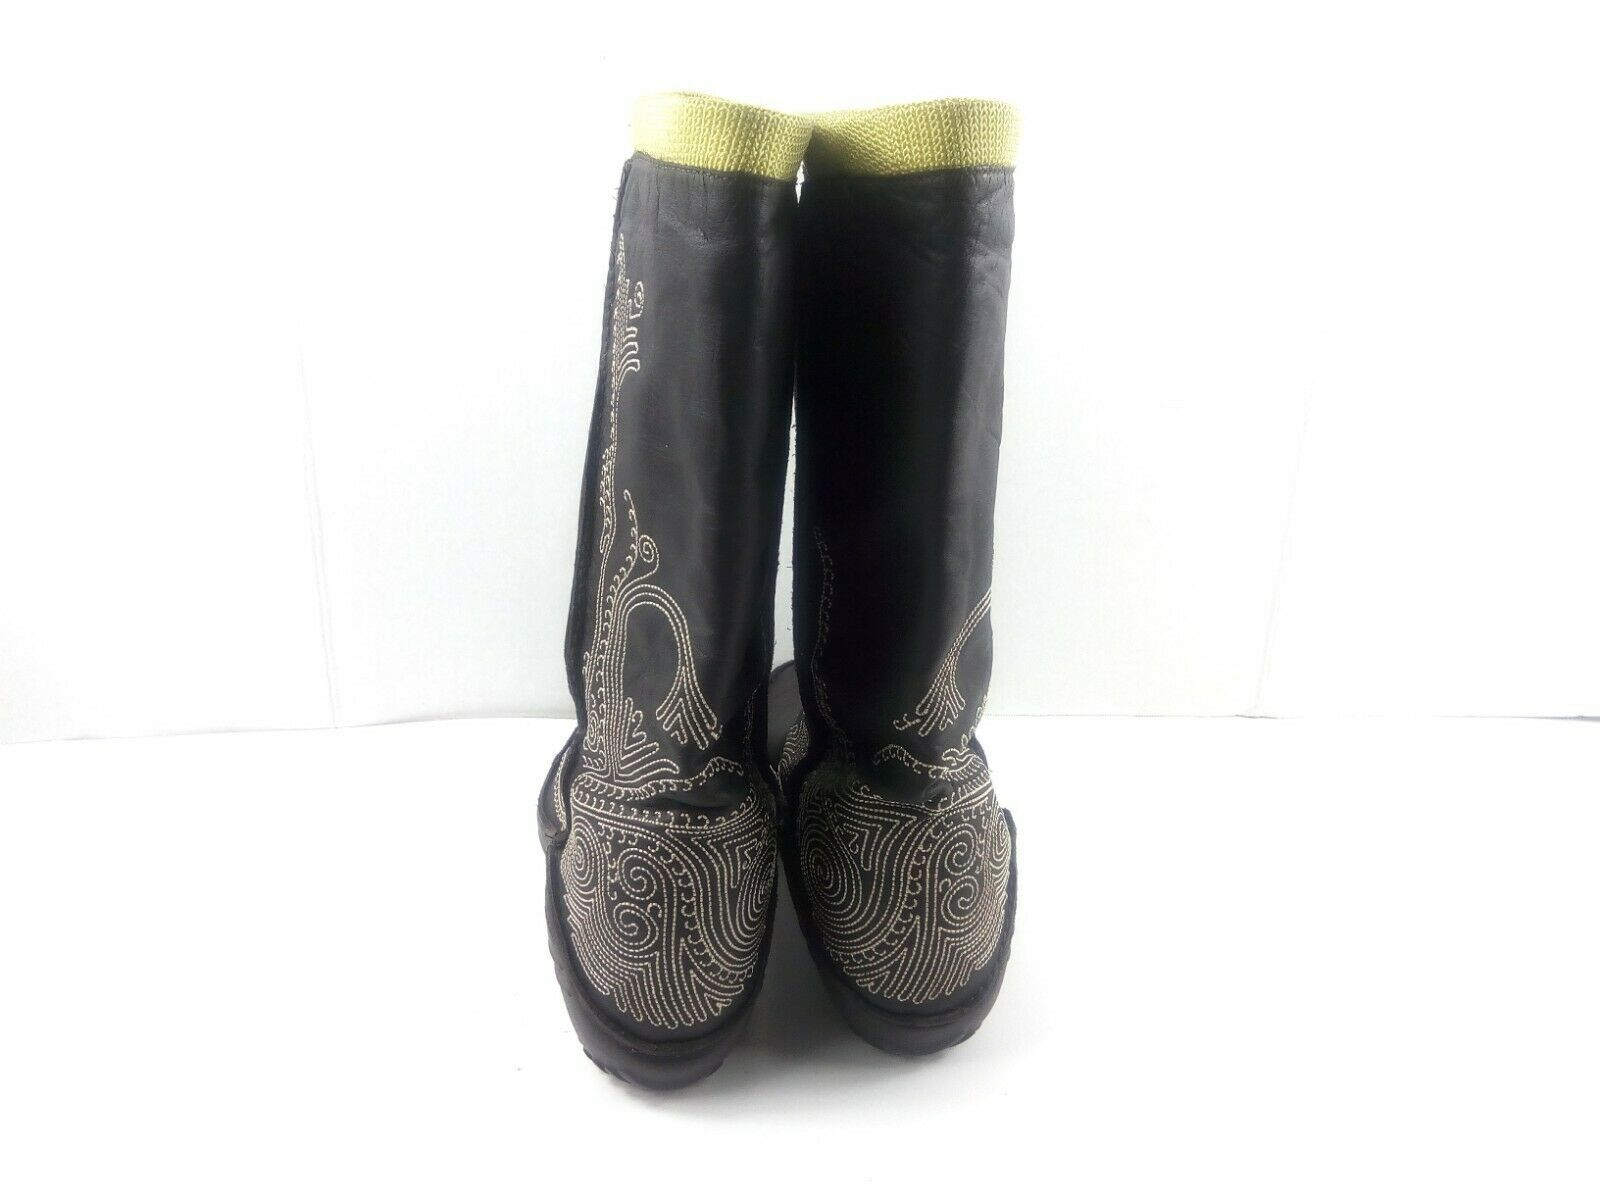 Puma Women's Boots Monsoon Tall Leather Embroidered Brown/Green Booties 7.5 W image 5